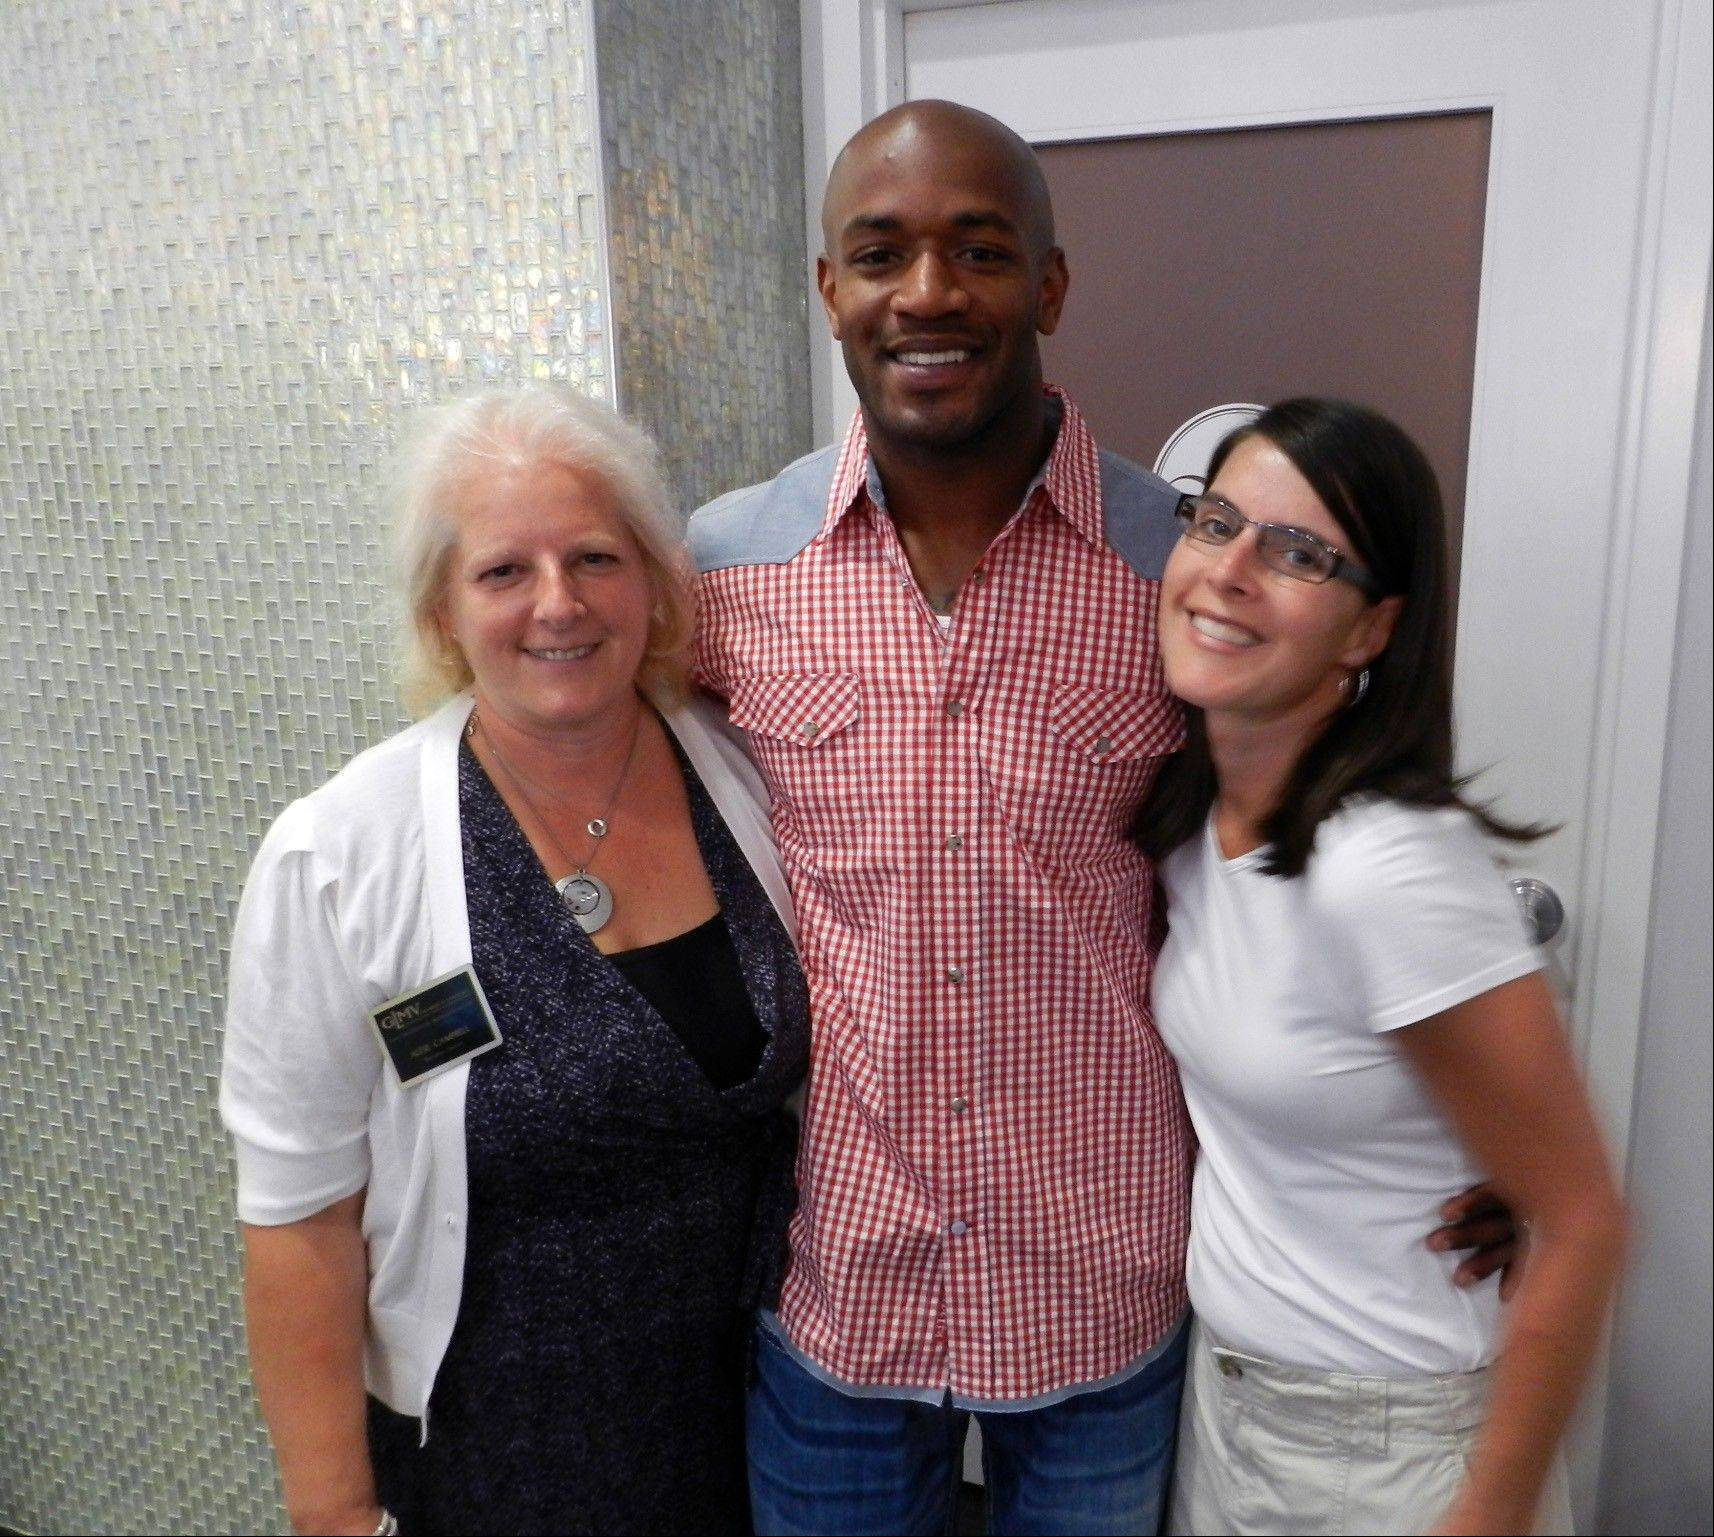 GLMV Chamber of Commerce Executive Director Alese Campbell, from left, spa co-owner and former Chicago Bear Brandon McGowan, and Amy Glover enjoy the festivities at the recent Venus vs. Marz grand opening celebration.